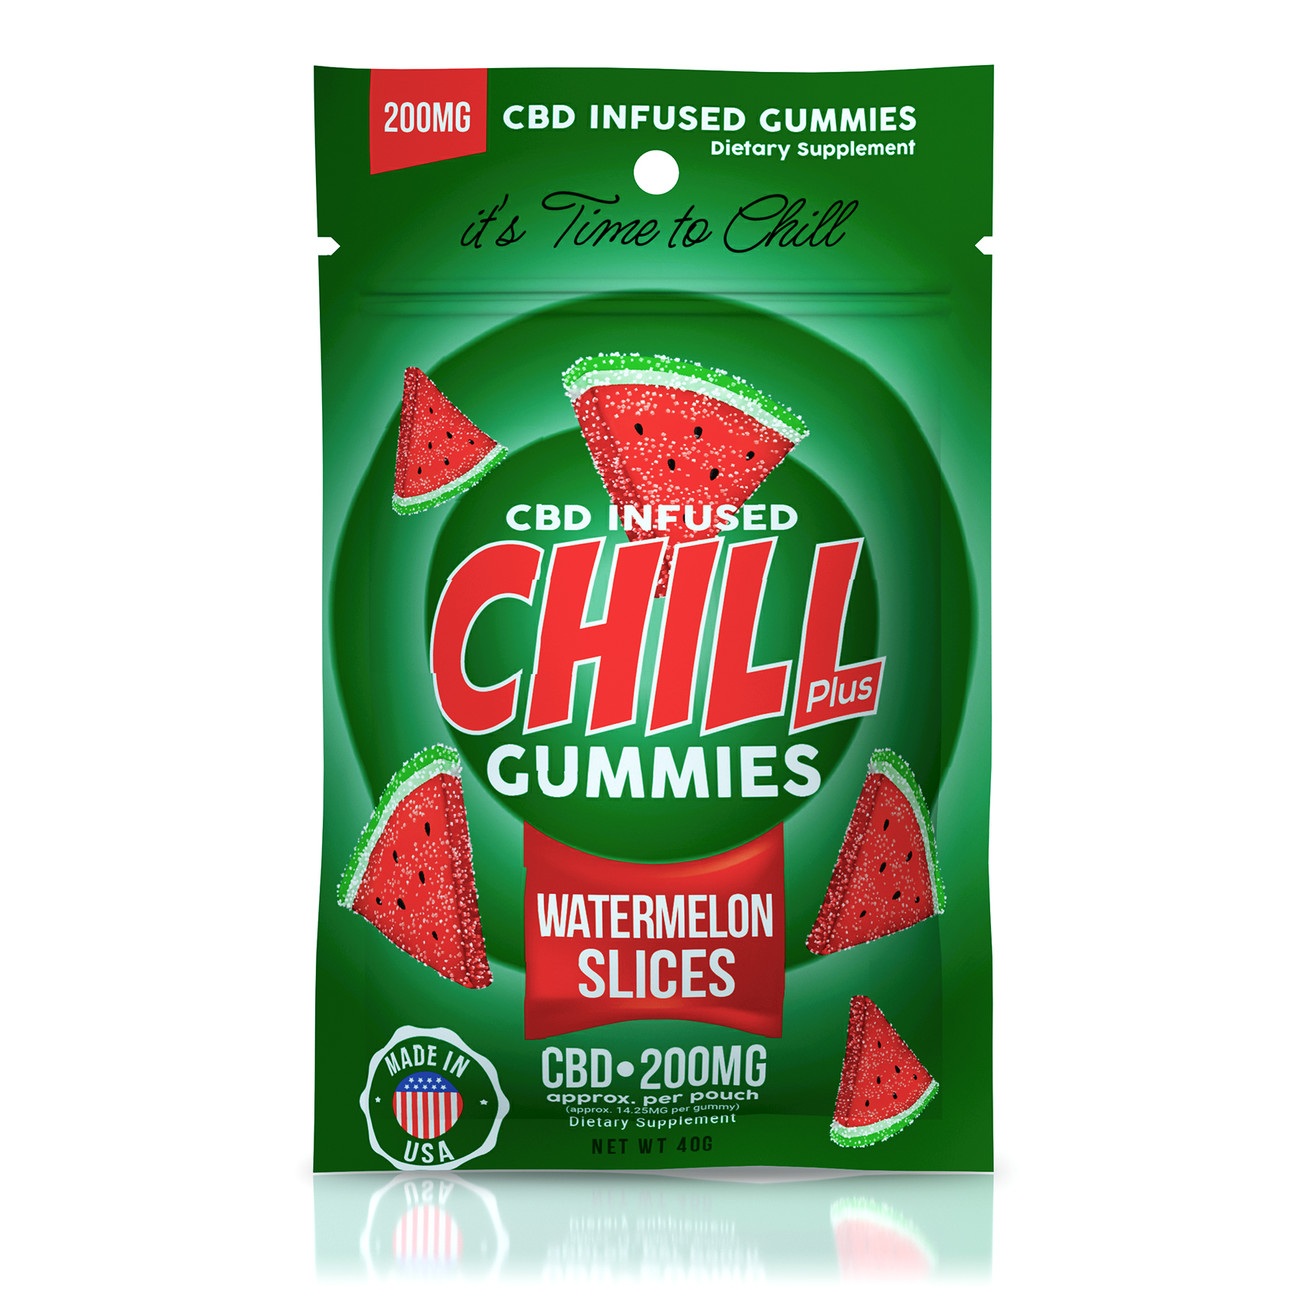 CHILL GUMMIES - CBD INFUSED WATERMELON SLICES - 200MG